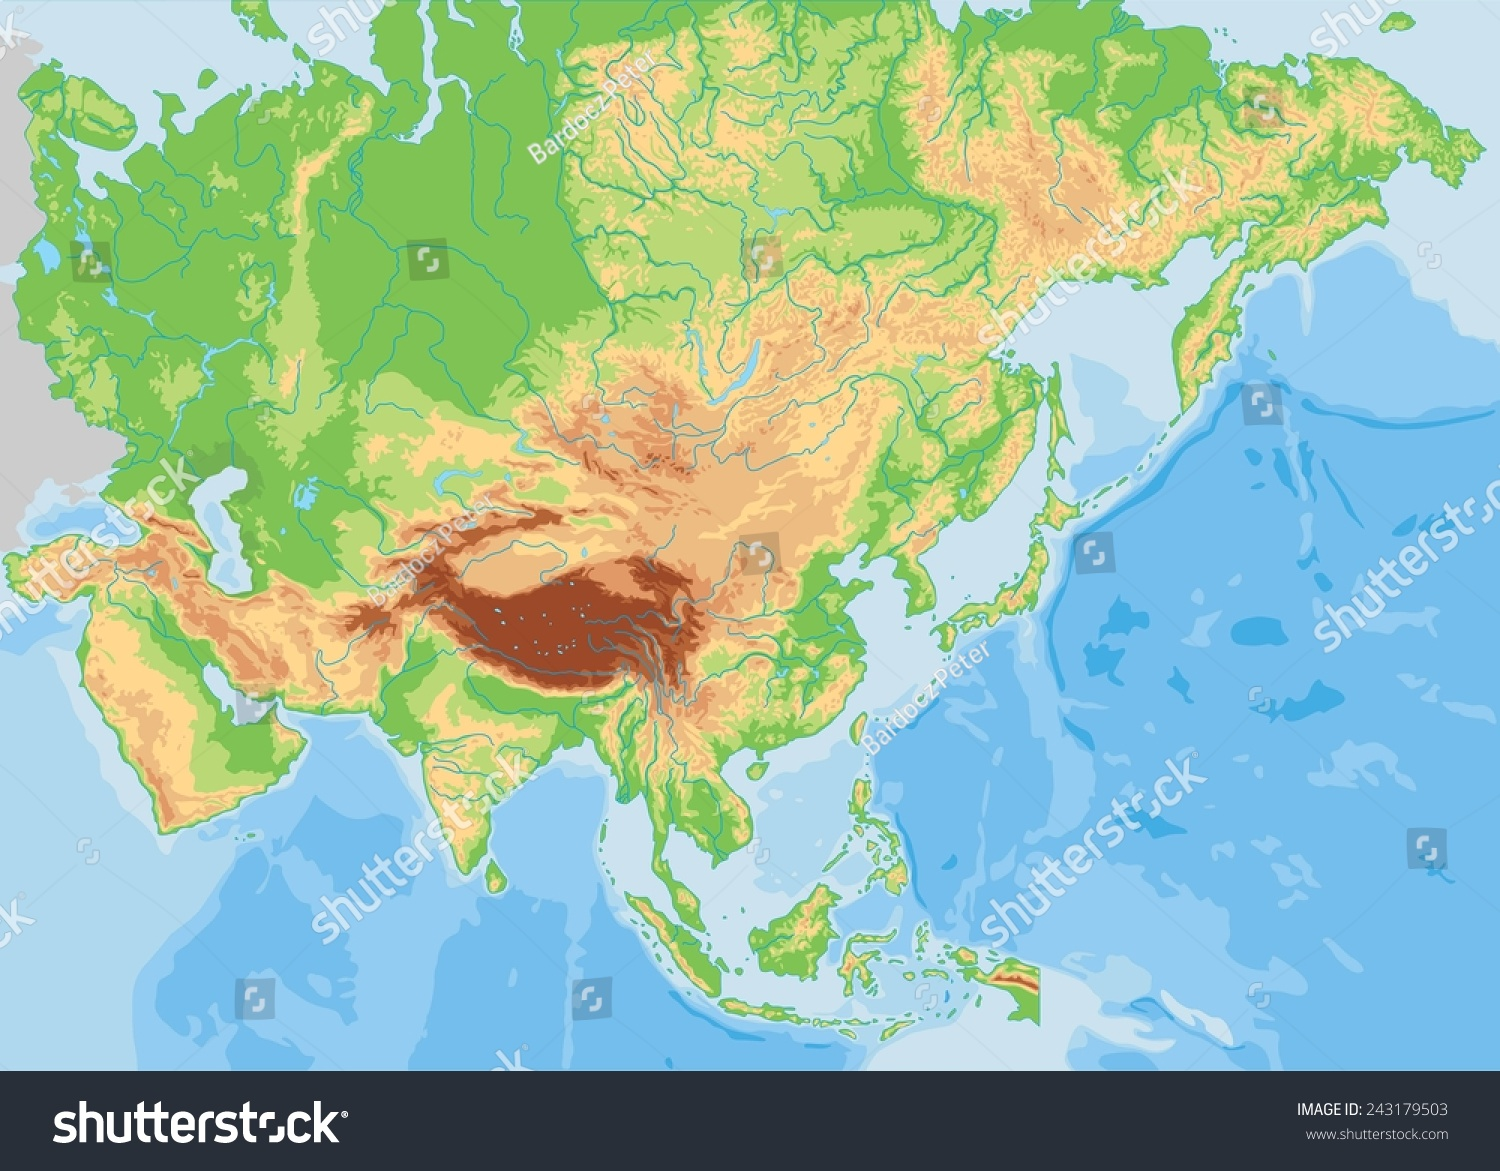 High Detailed Asia Physical Map Stock Vector Shutterstock - Asia physical map